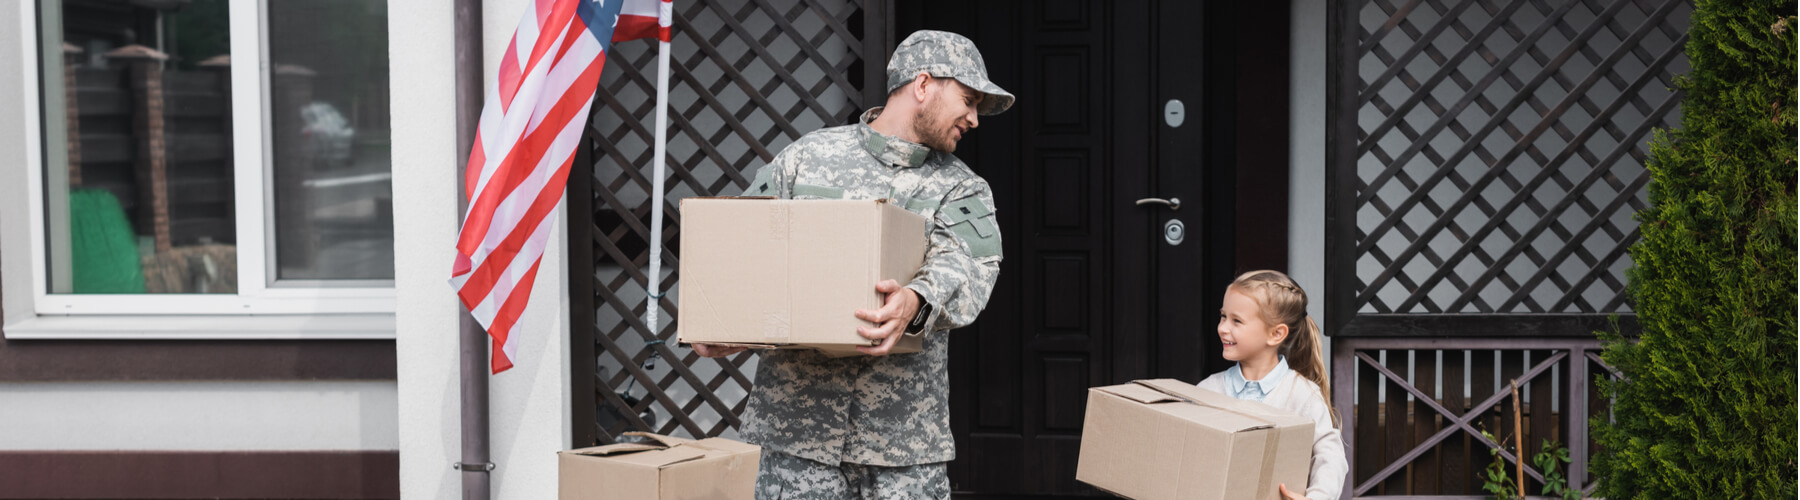 Father in military uniform and daughter holding cardboard boxes near house with american flag, moving in or out of military house